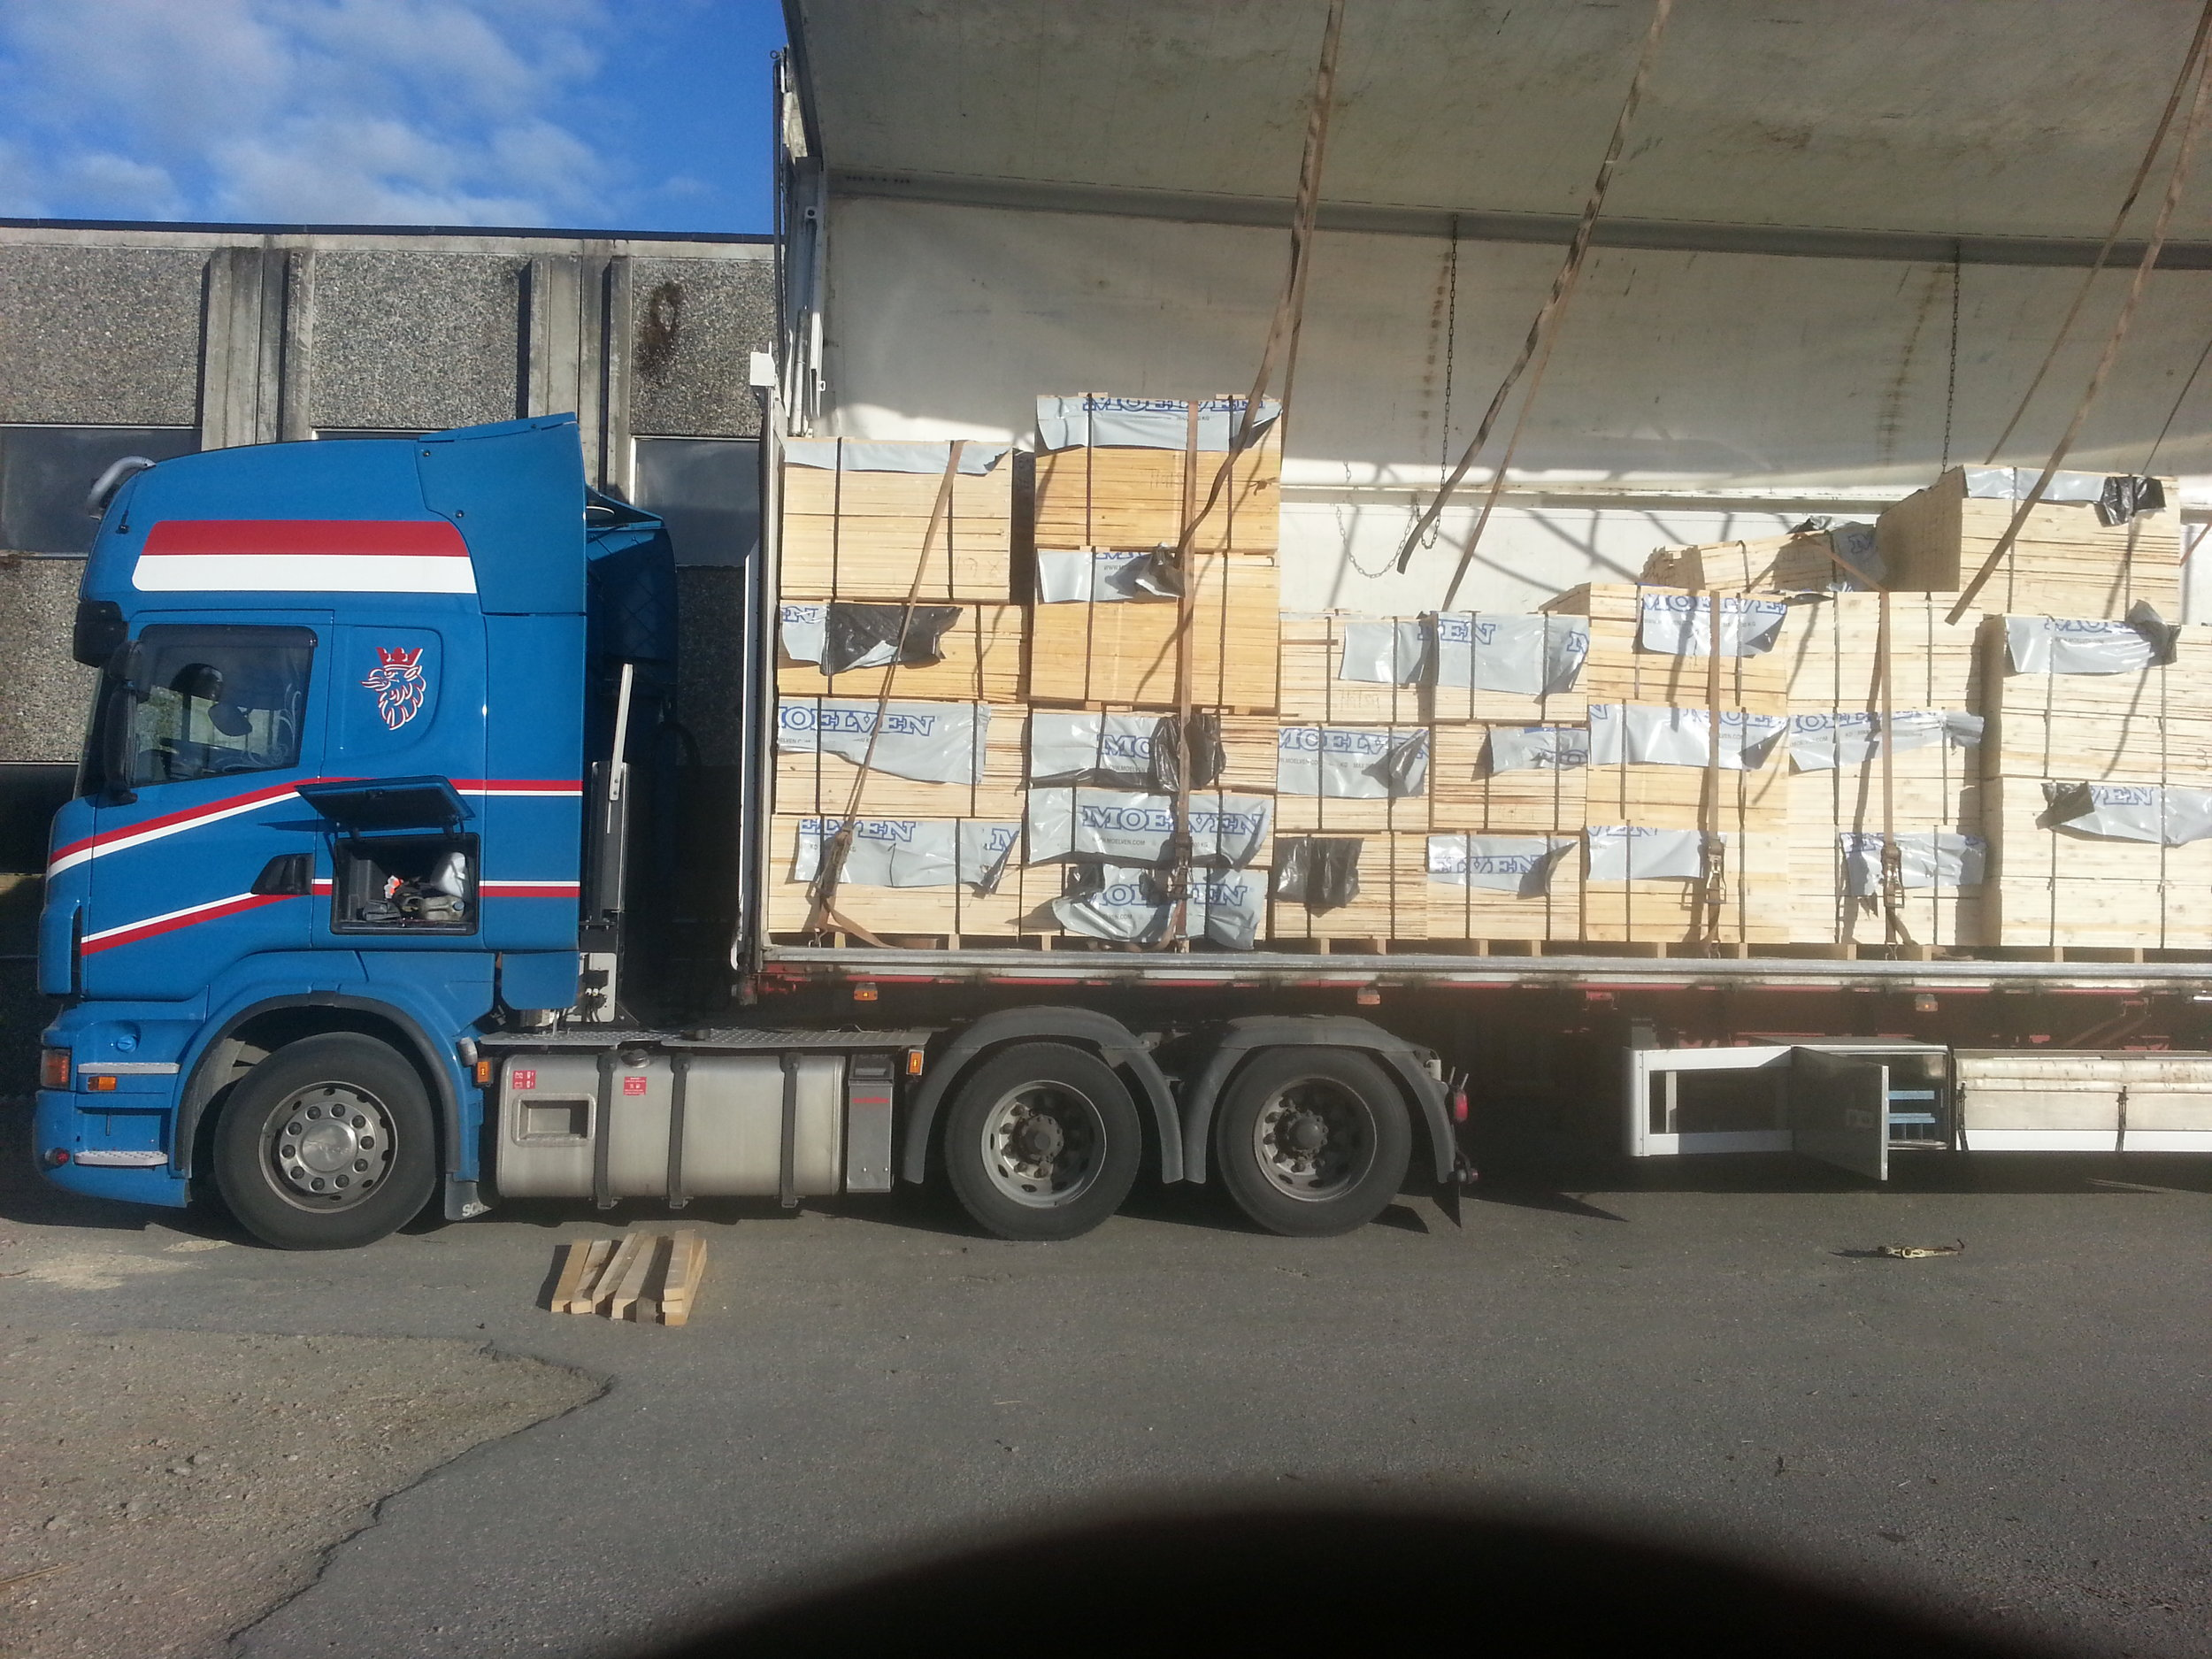 Pallematerial